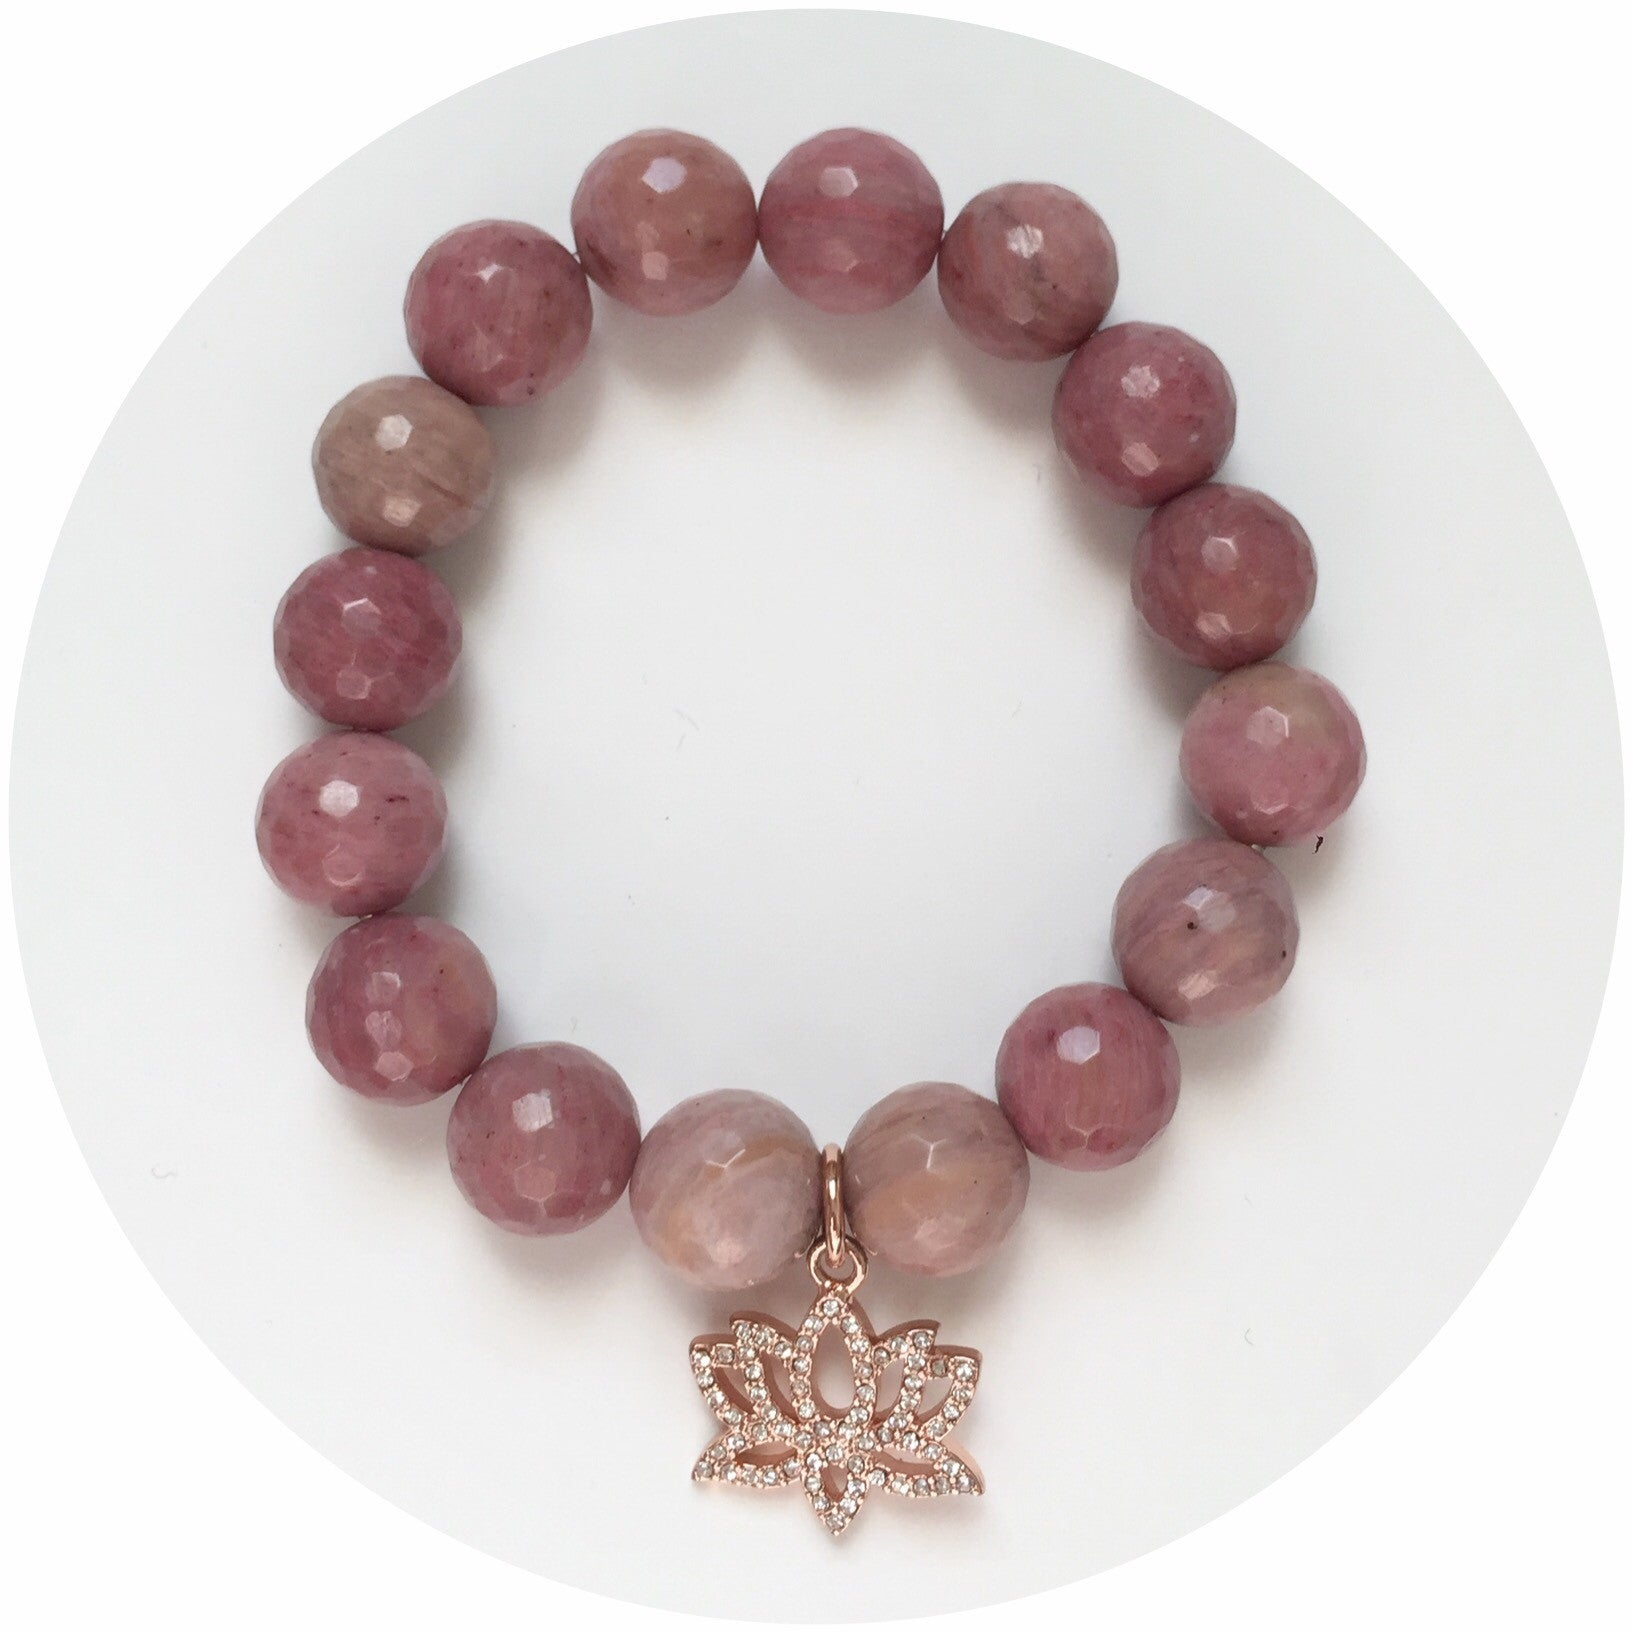 Rhodonite with Pavé Rose Gold Lotus Pendant - Oriana Lamarca LLC